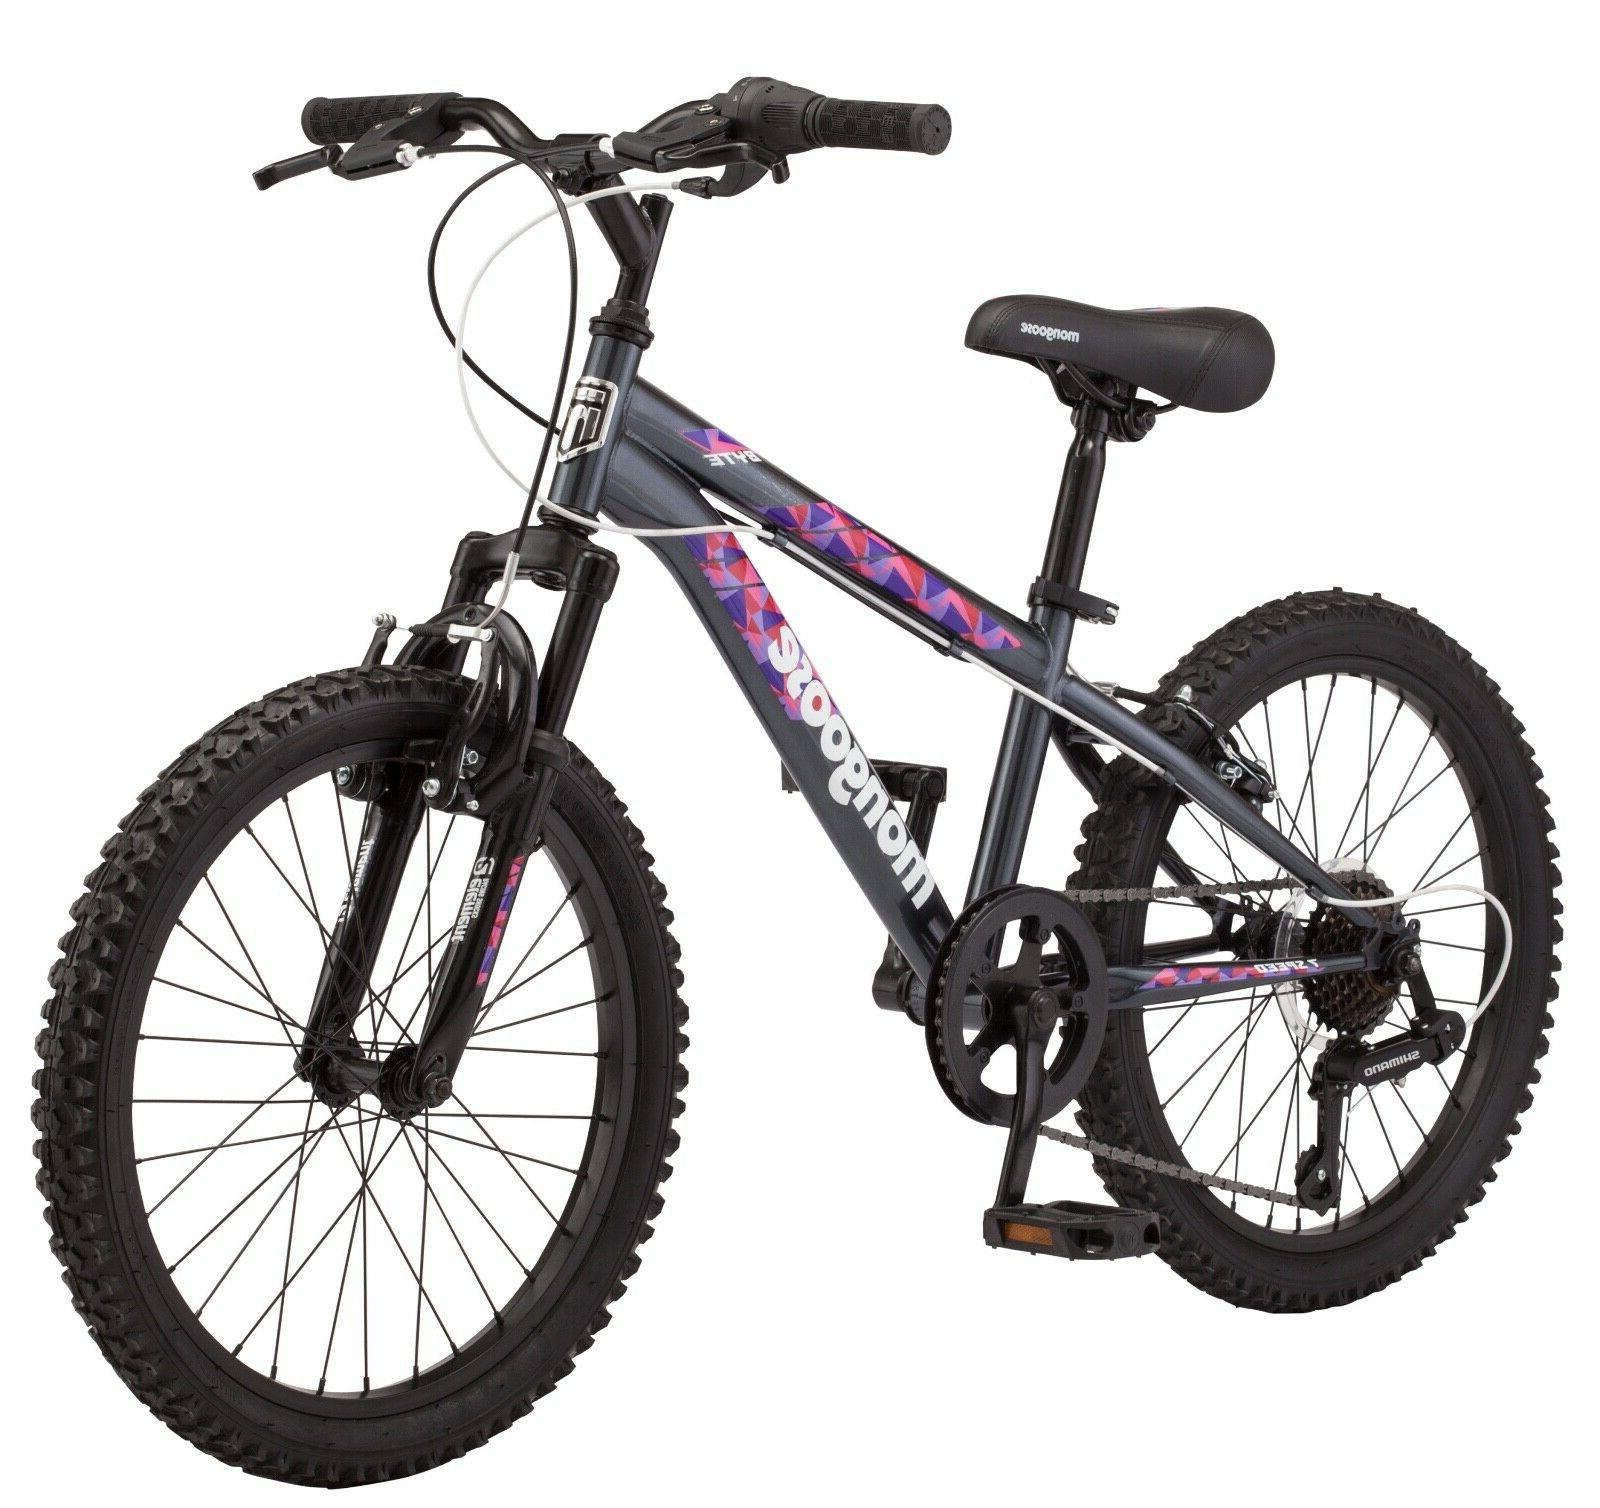 Mongoose Byte Mountain Bike, 20-inch speeds, ages and